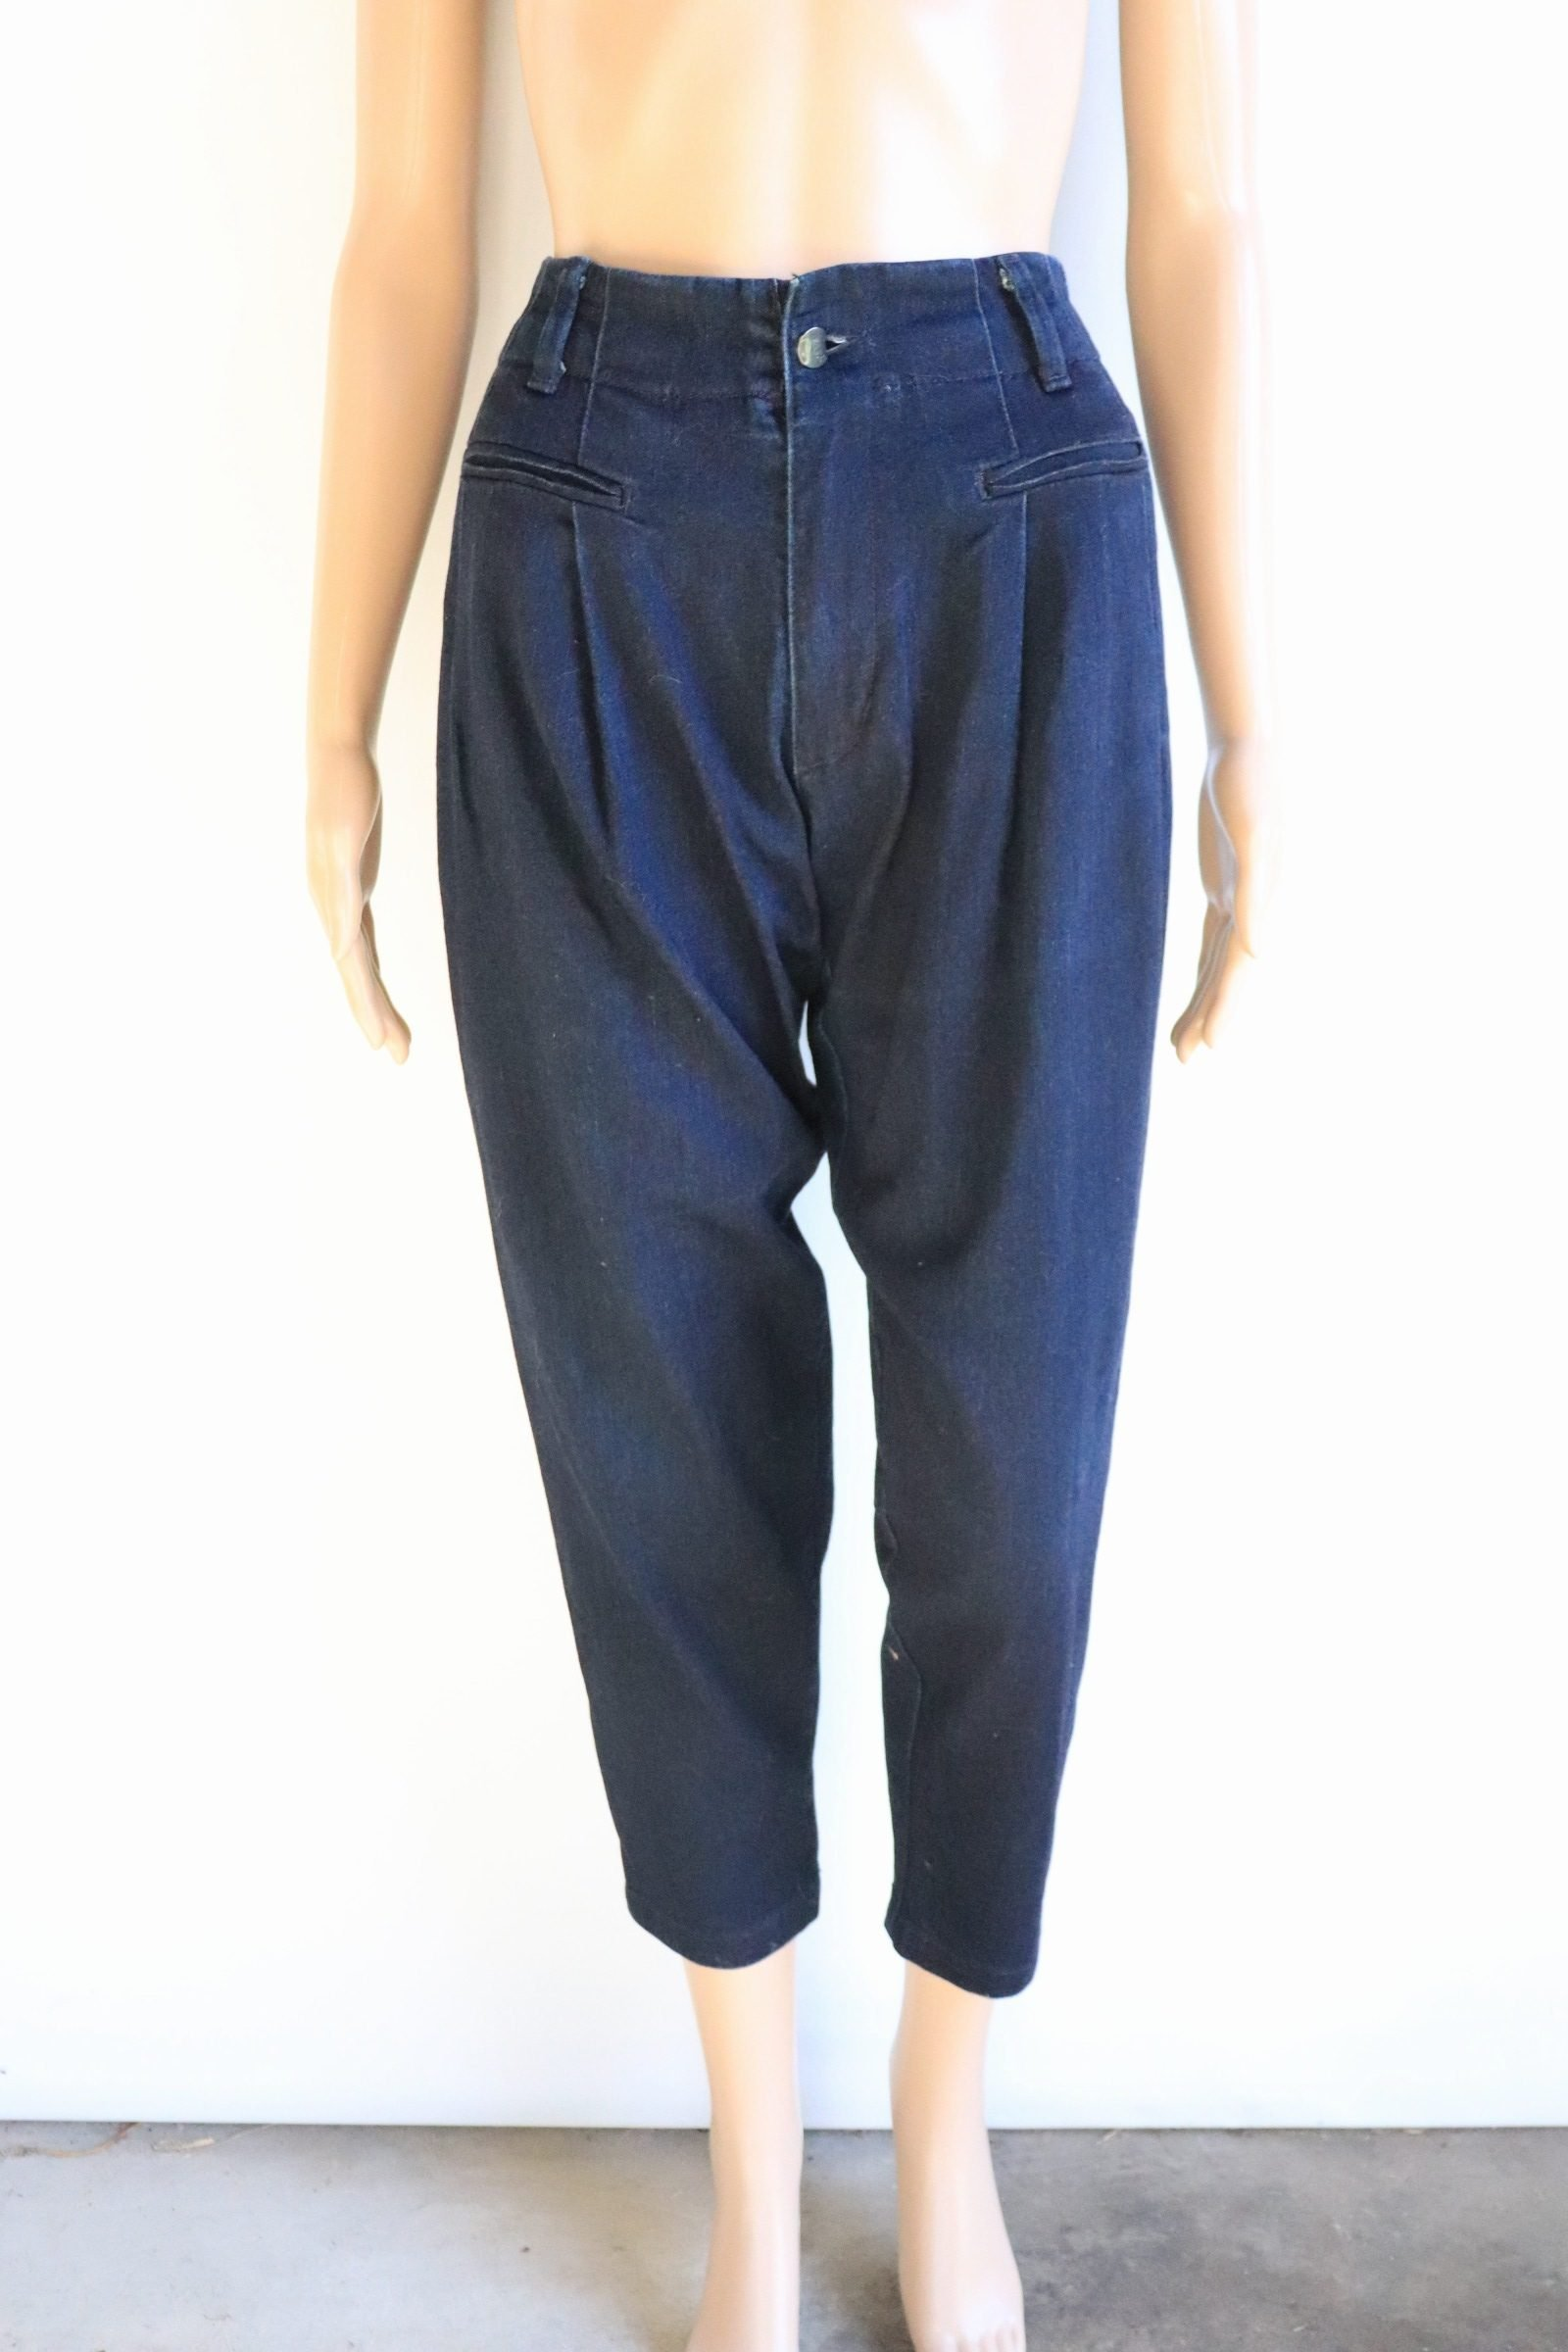 Lee navy high waisted jeans